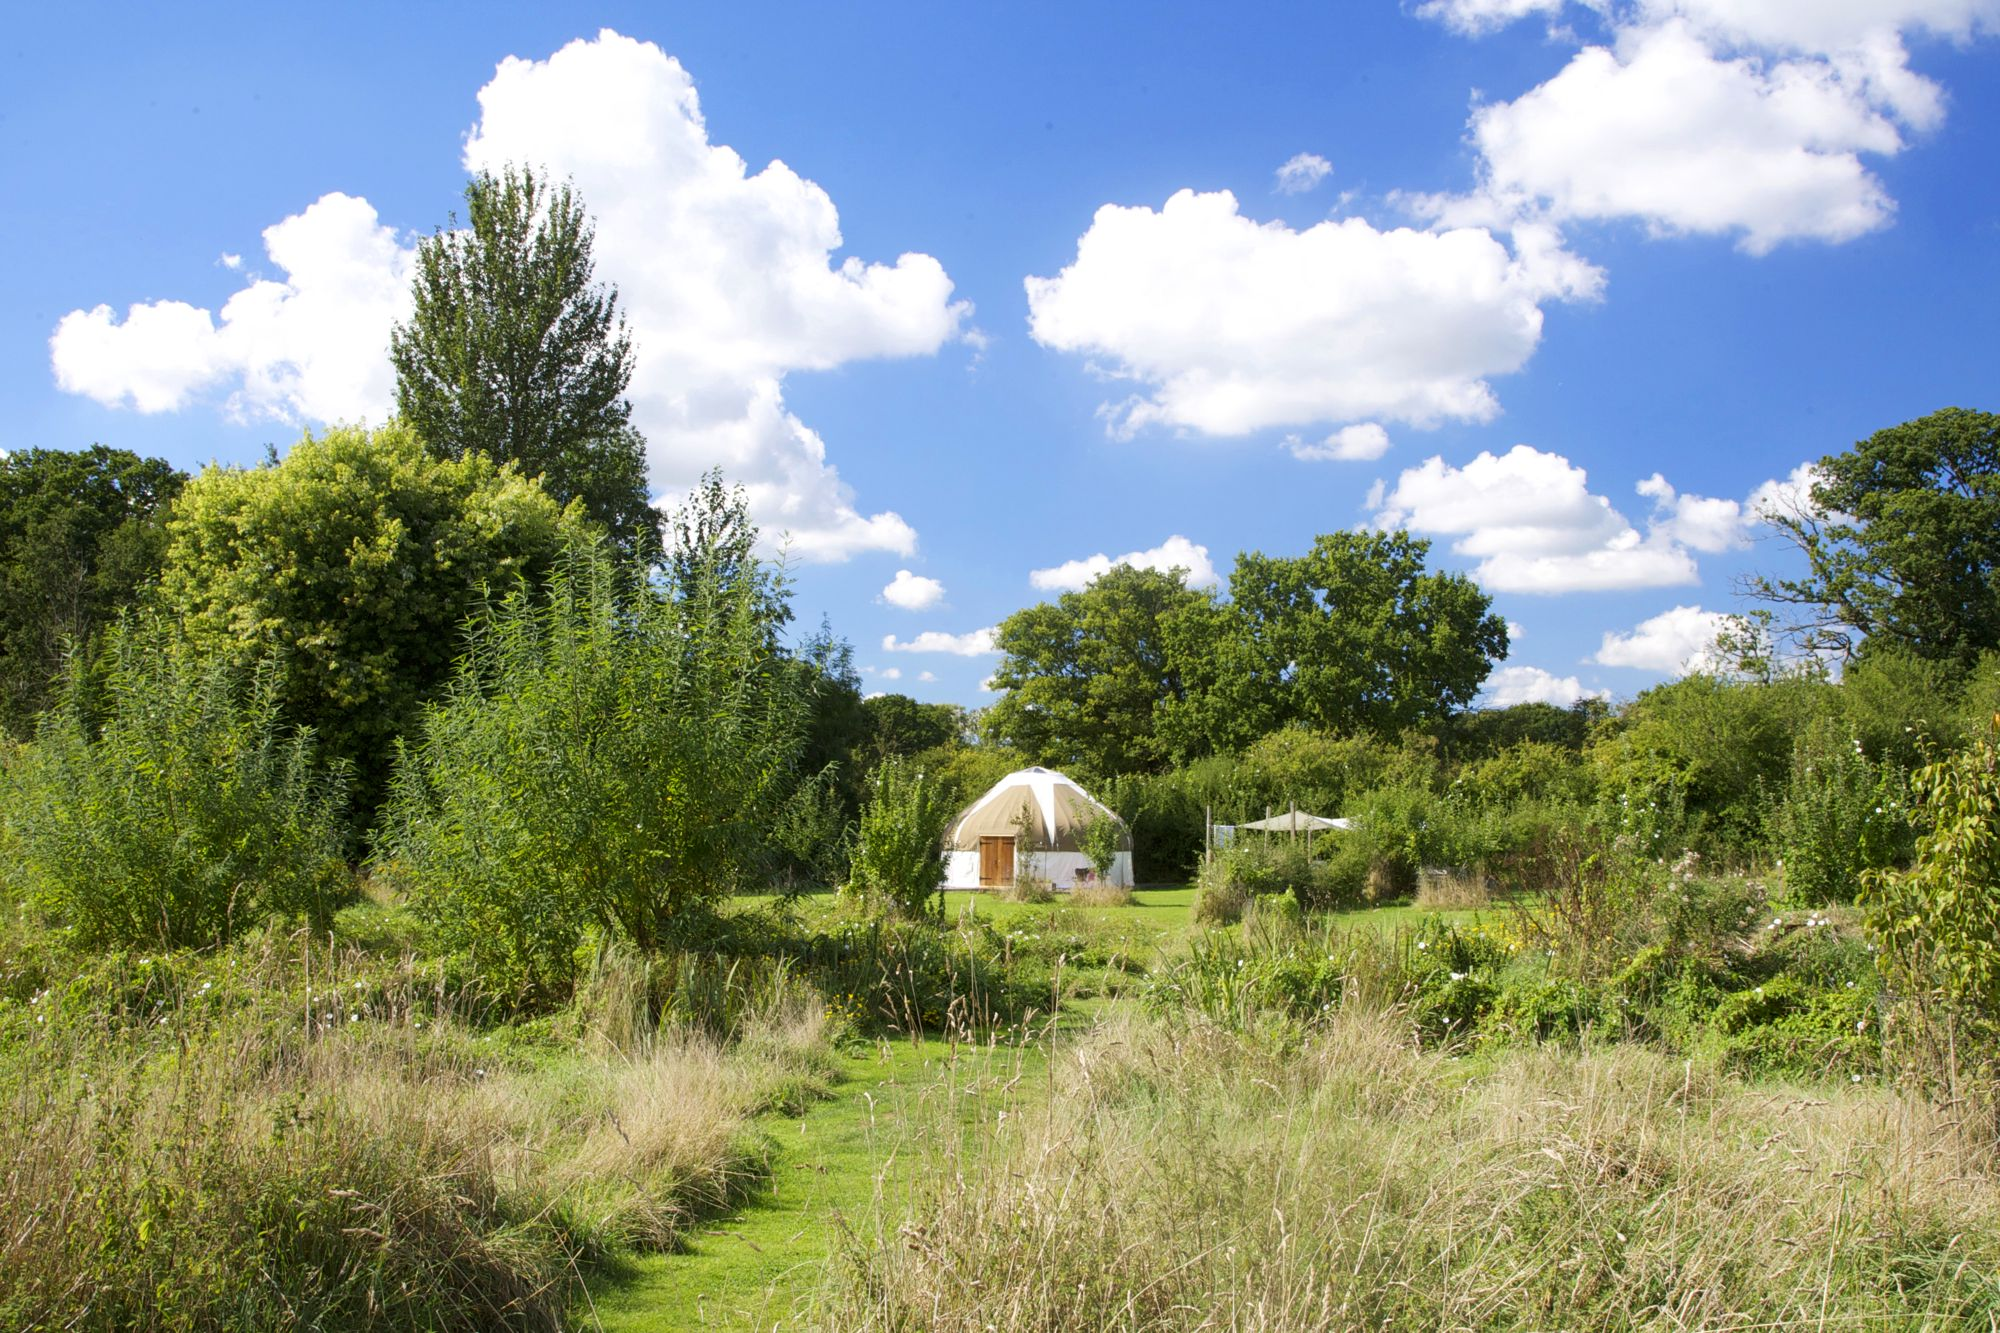 Glamping in Dorset: True organic, family glamping in a beautiful corner of the Dorset countryside.